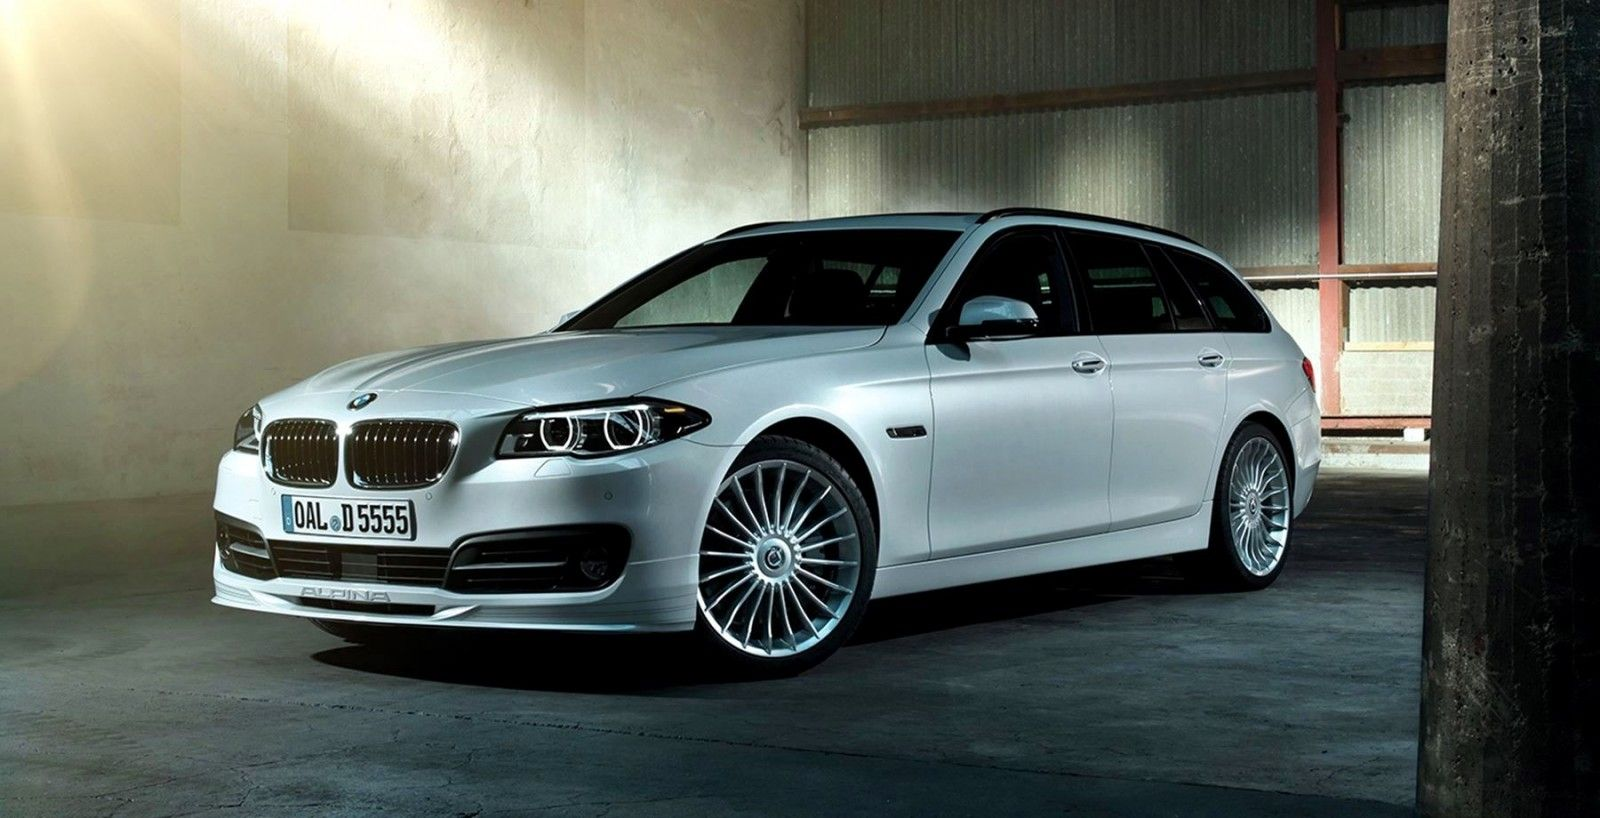 Alpina B5 Mods Available For Usa Bmw 5 Series Owners With Images